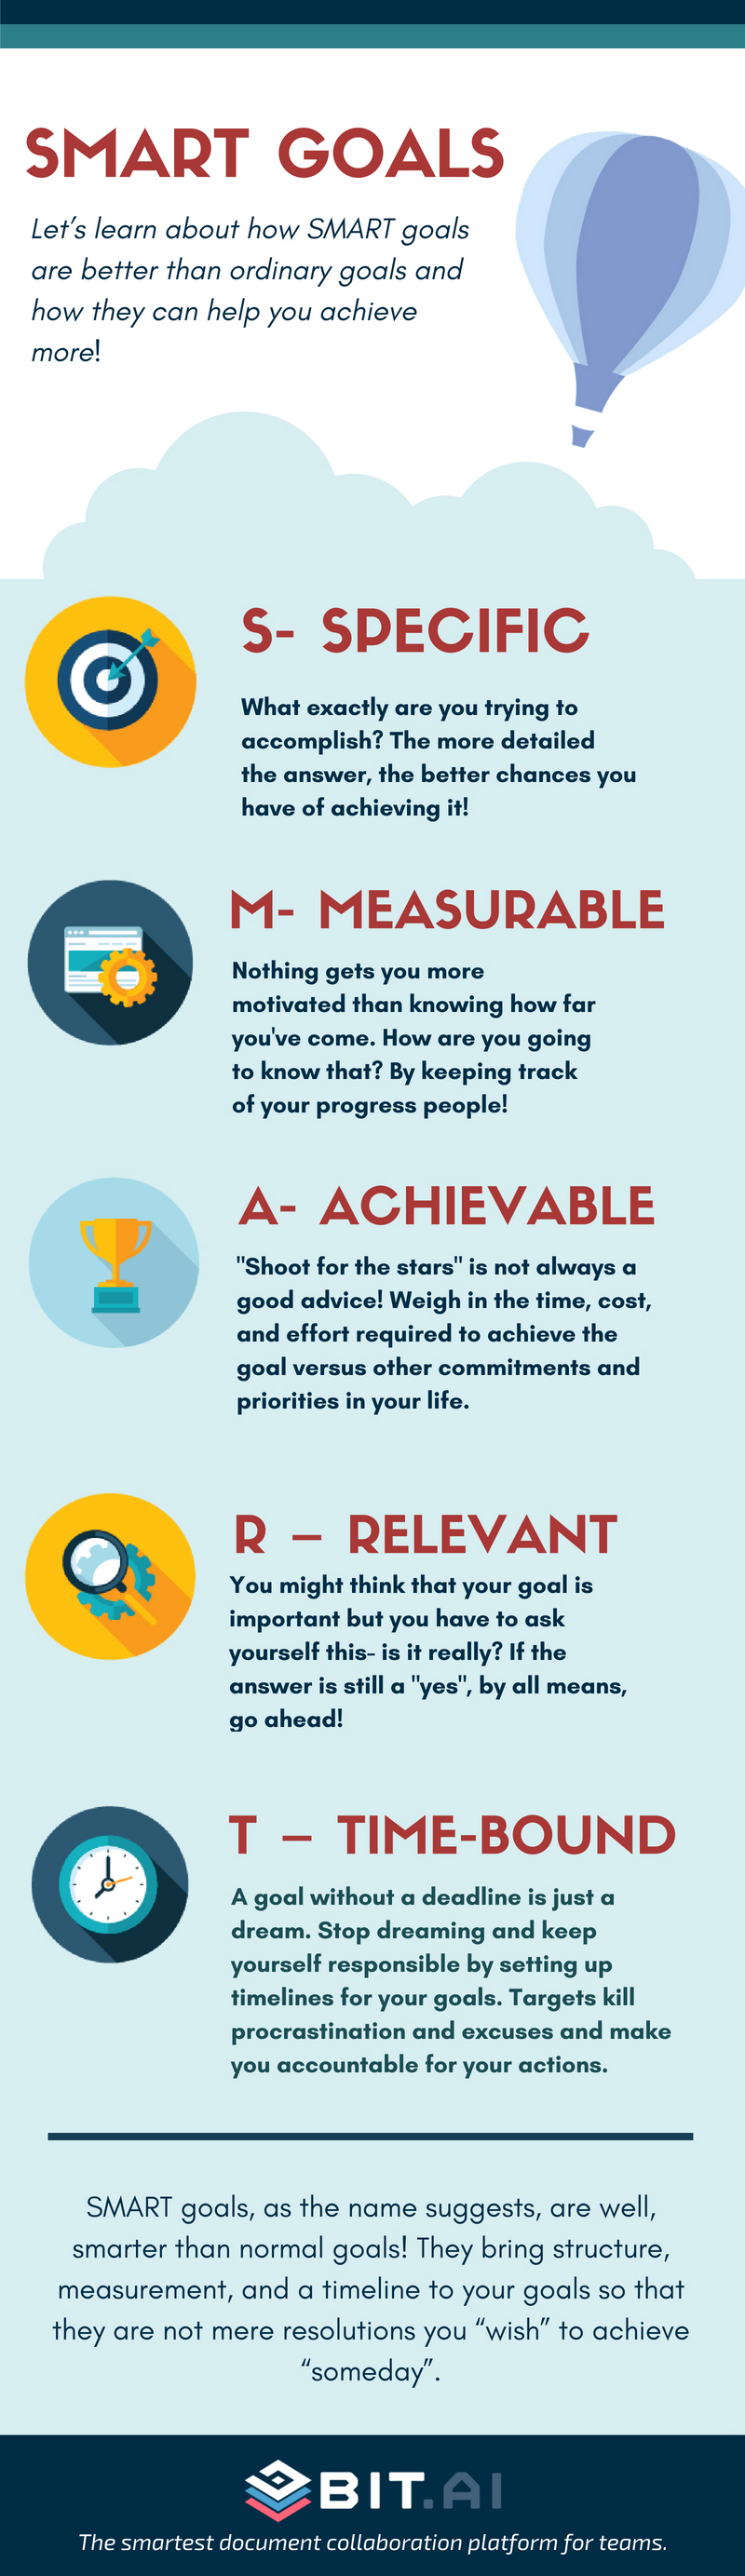 How to Achieve Your Objects by Setting SMART Goals-Smart Goals Infographic